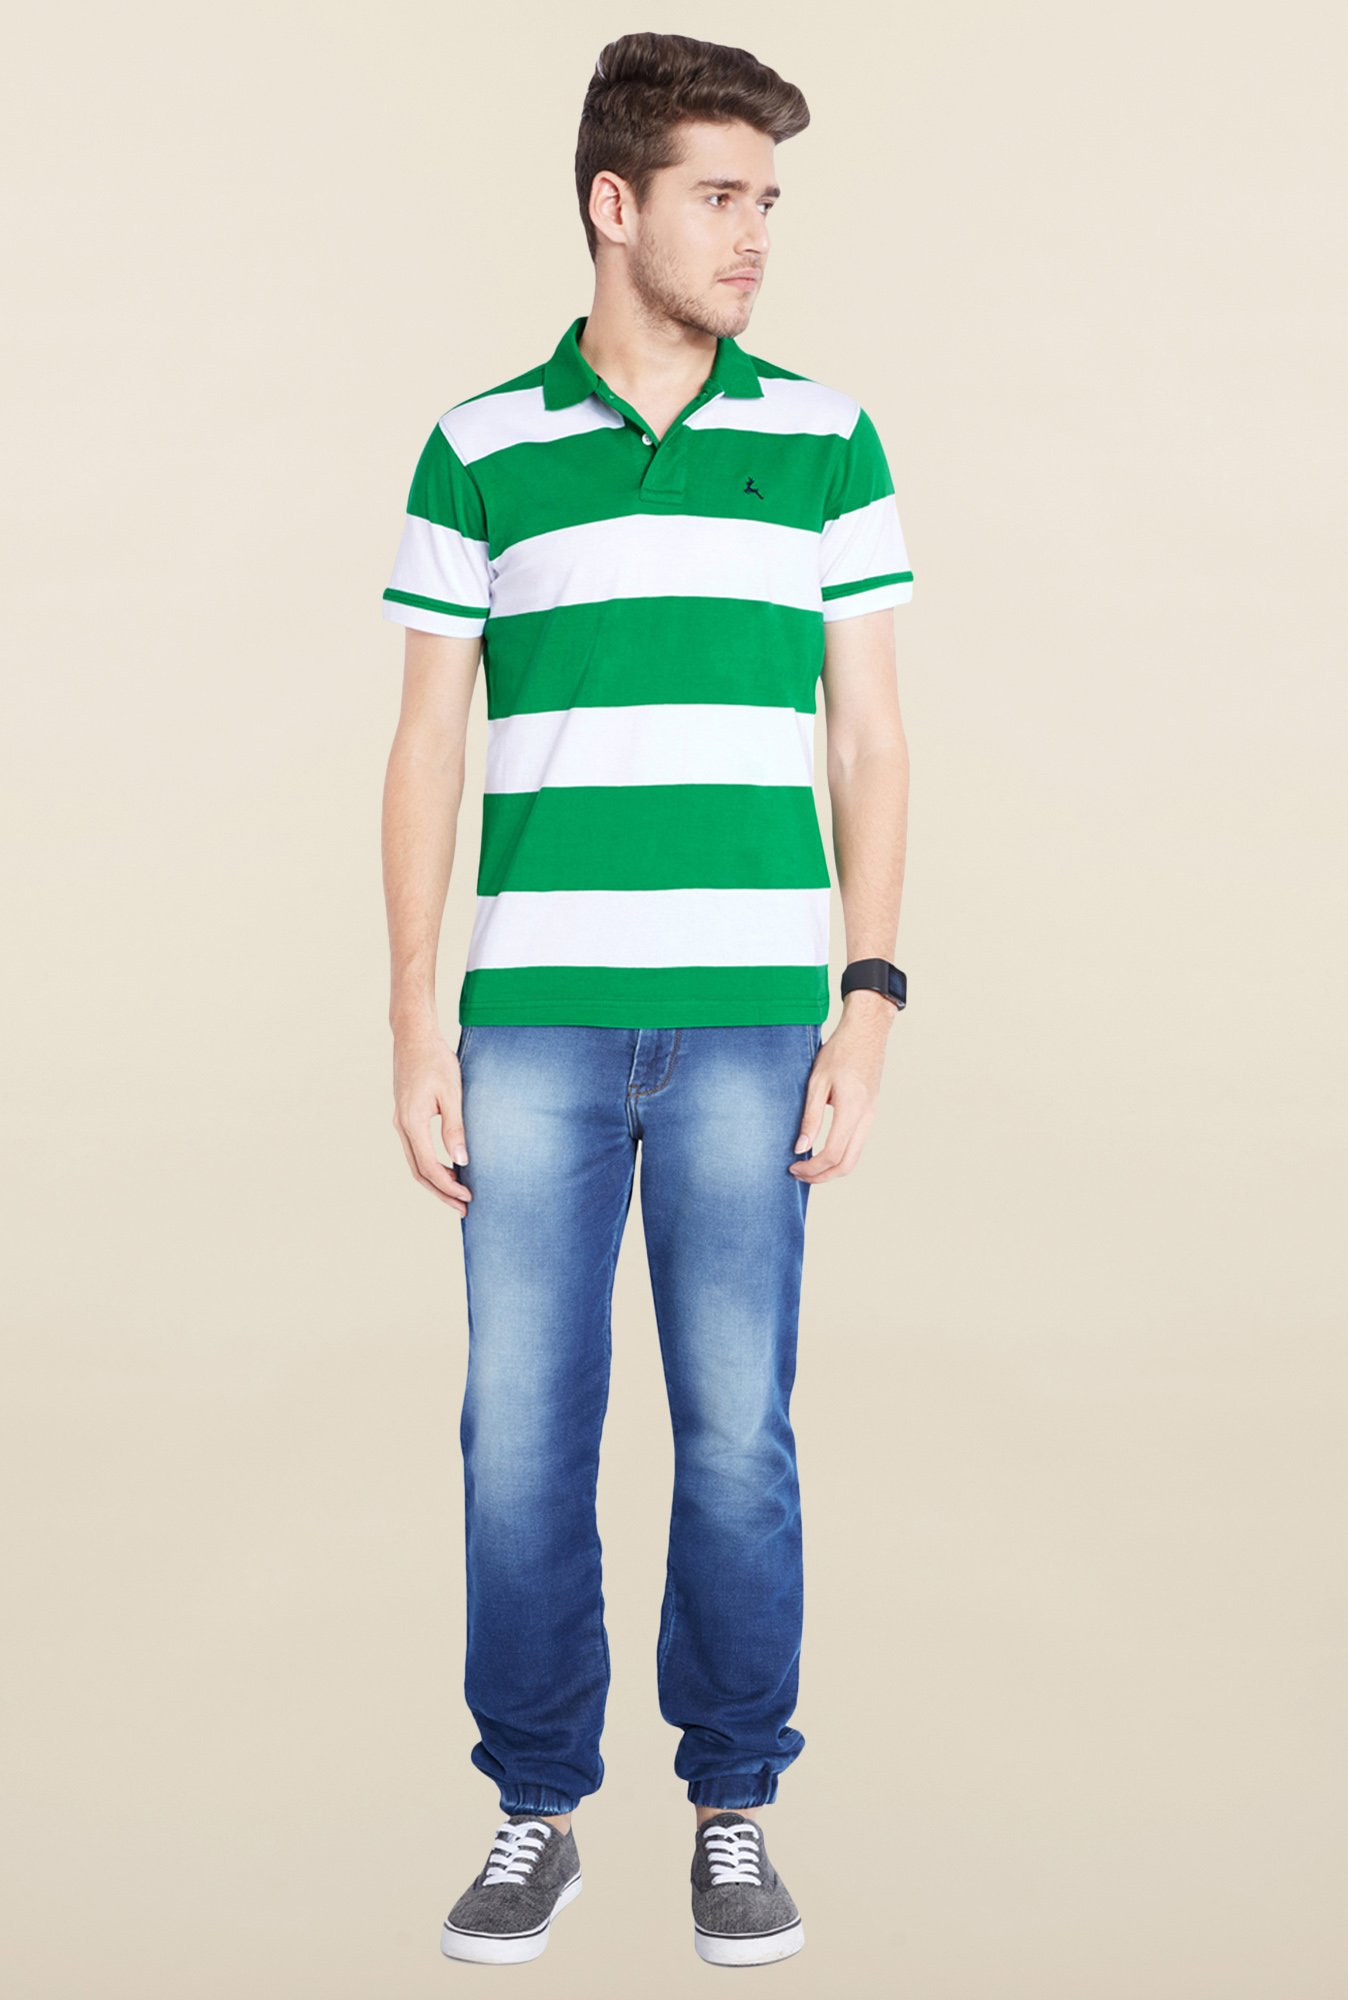 Parx Green & White Striped Cotton T-Shirt